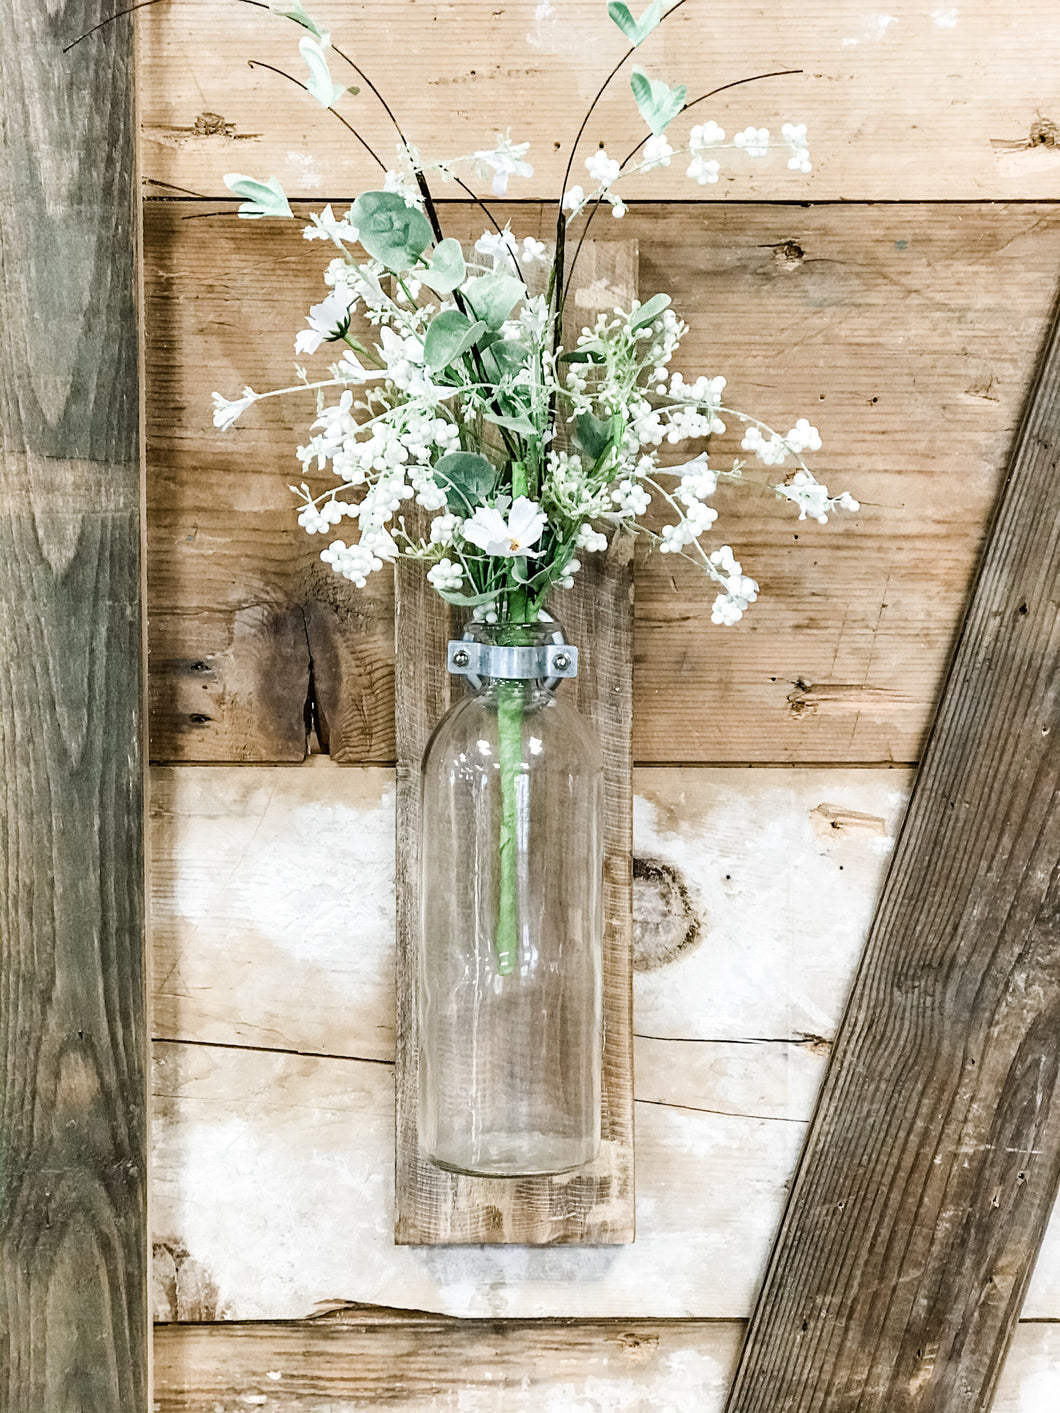 Wood Wall Decor With Glass Vase